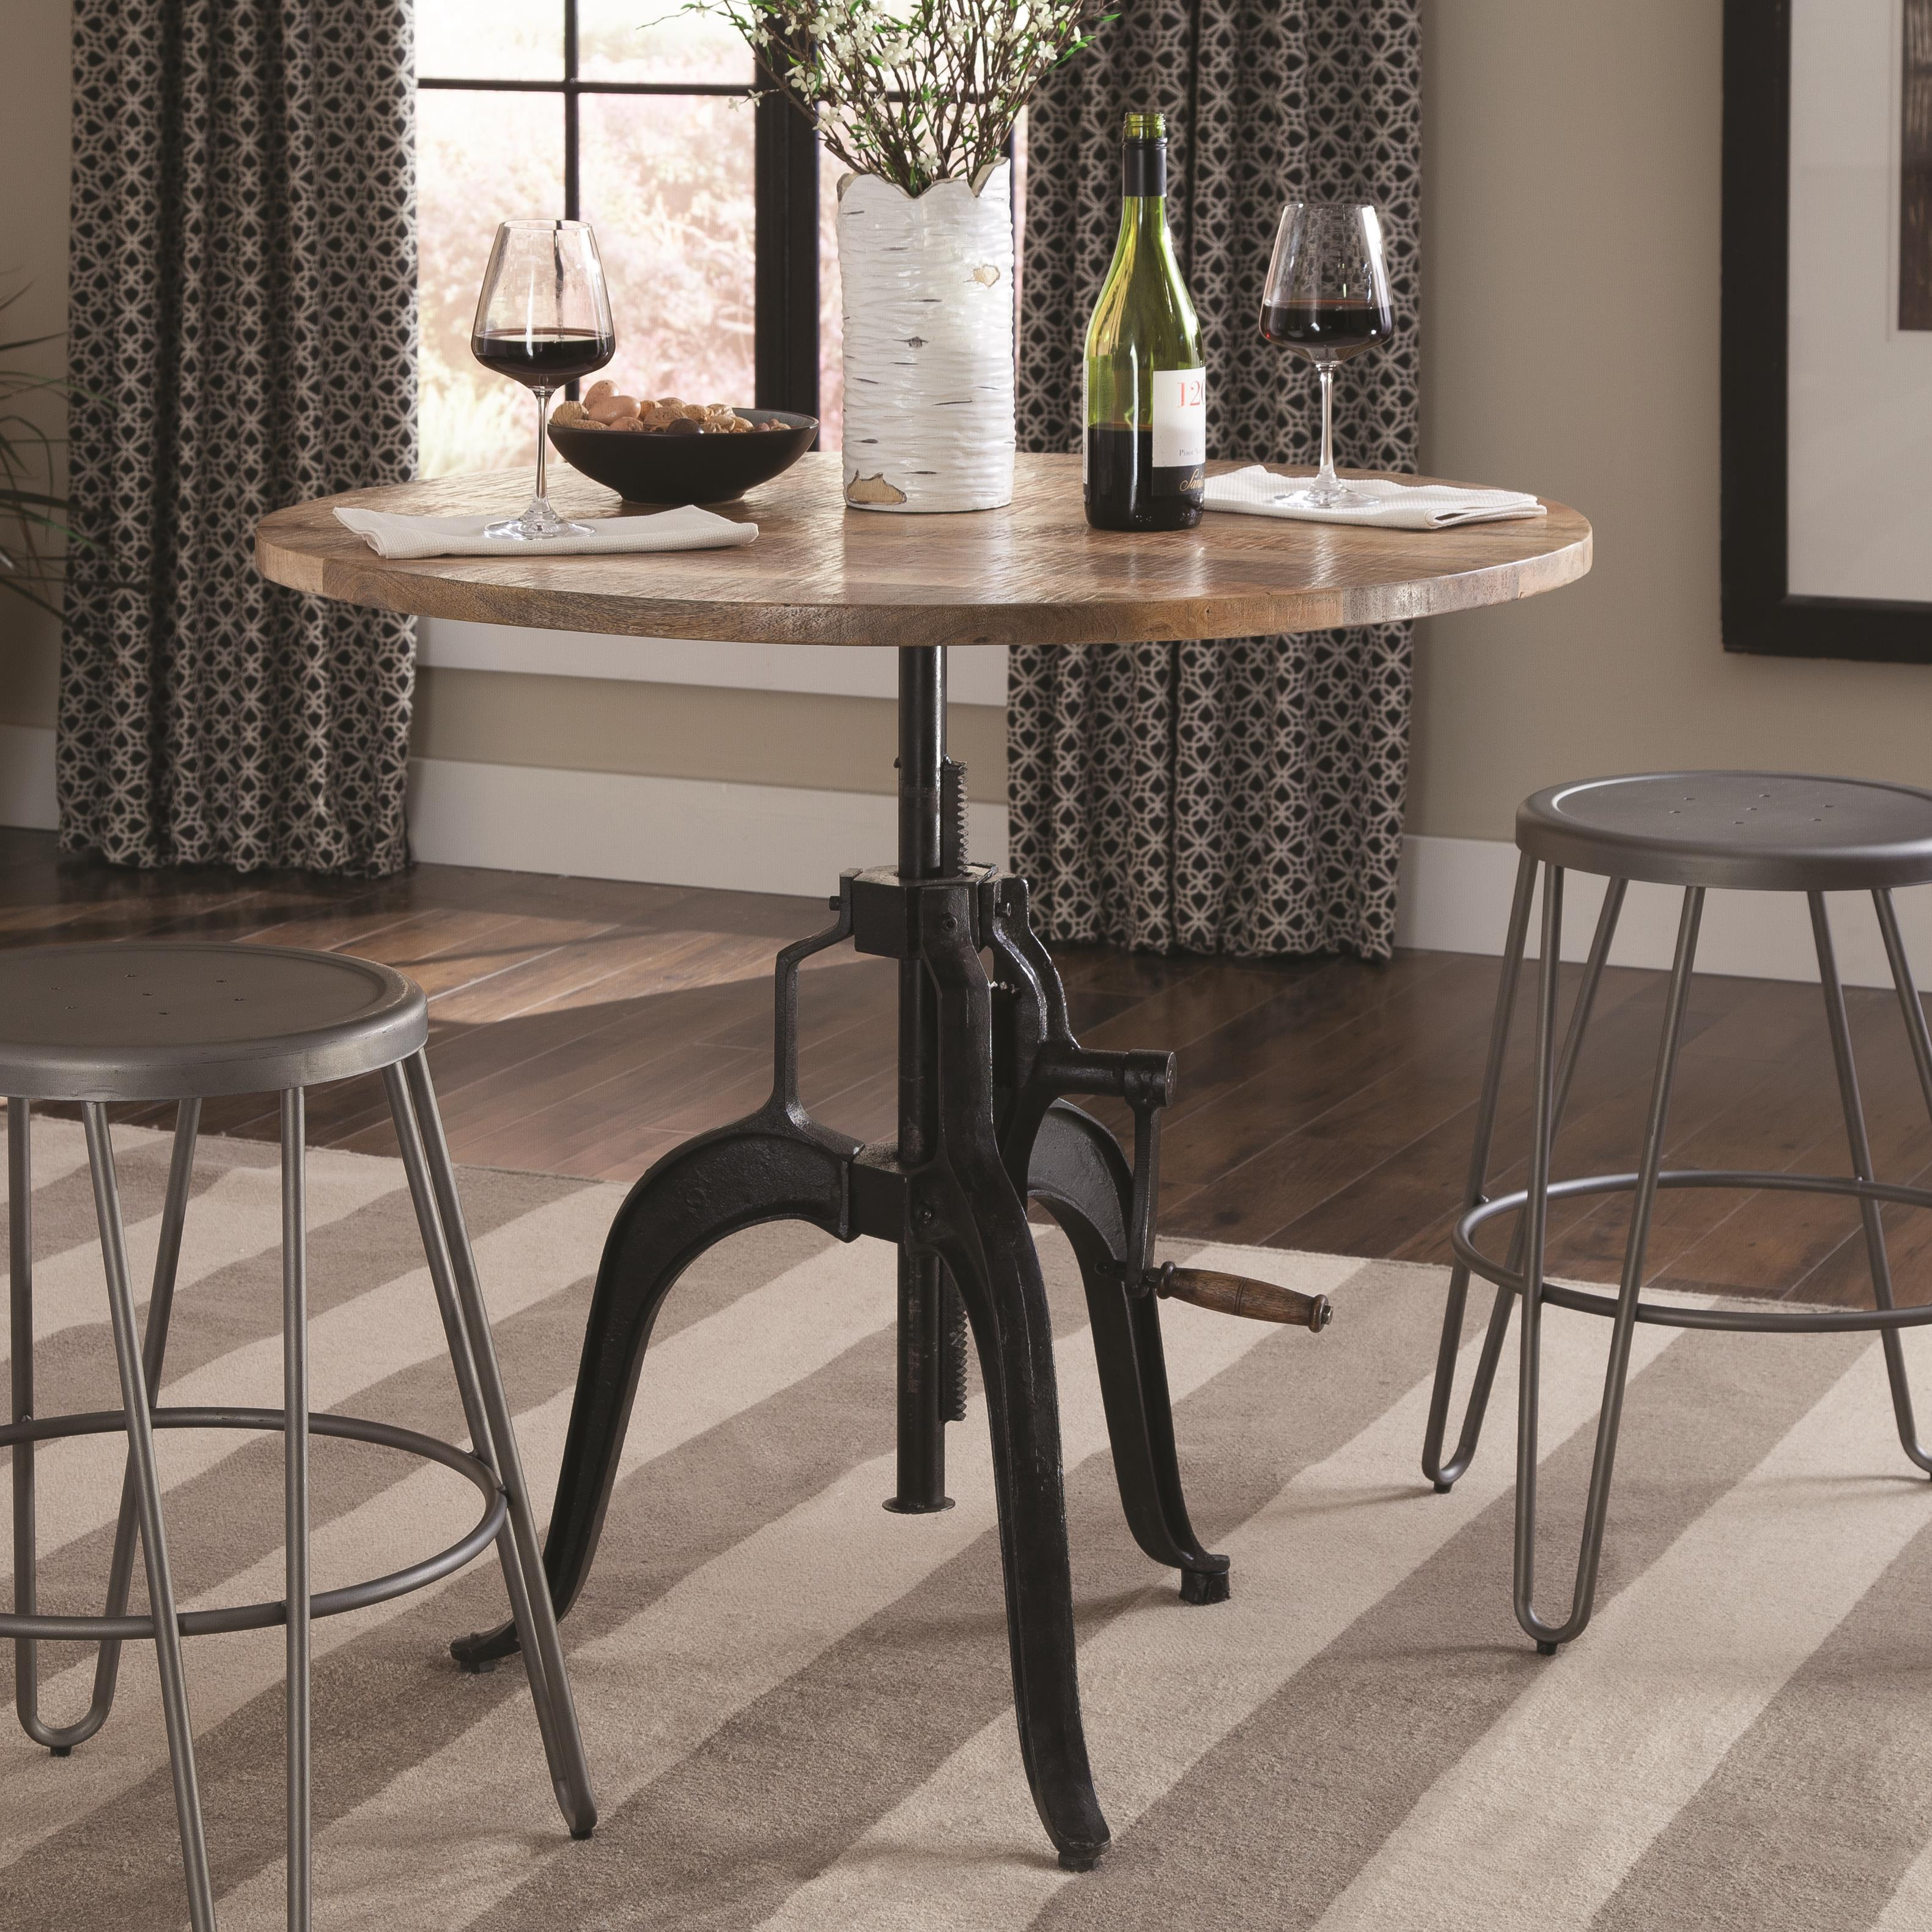 Galway Adjule Height Dining Table